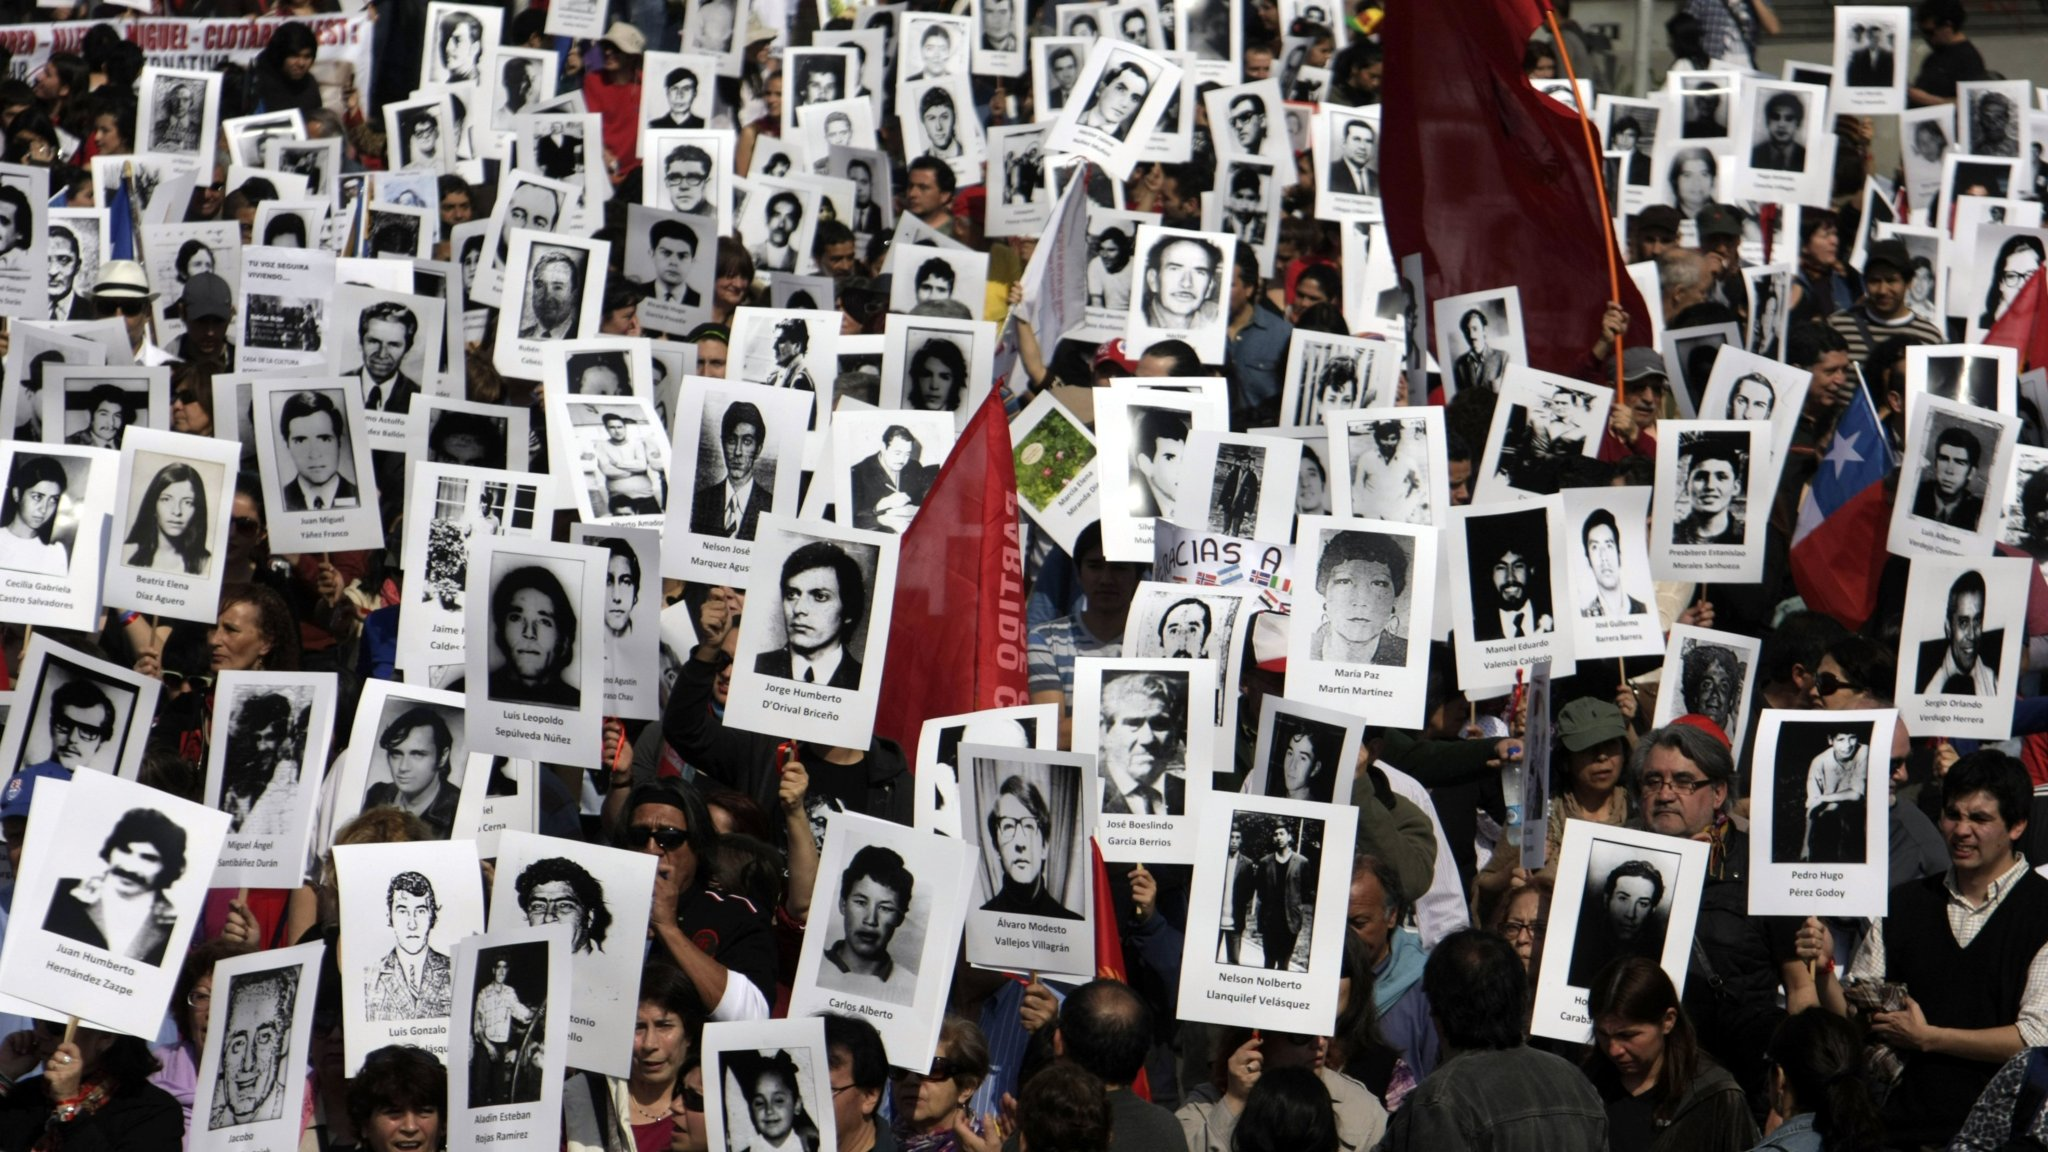 """Activists of the Chilean Human Rights organization """"Detained and Disappeared People"""" take part in a demonstration in Santiago on September 8, 2013, in remembrance of late President (1970-1973) Salvador Allende, who died on September 11, 1973 during the military coup d'etat led by general Augusto Pinochet. On September 11 Chile will commemorate the 40th anniversary of the coup that toppled Salvador Allende and brought dictator Pinochet to power. AFP PHOTO/Sebastian Silva        (Photo credit should read Sebastian Silva/AFP/Getty Images)"""